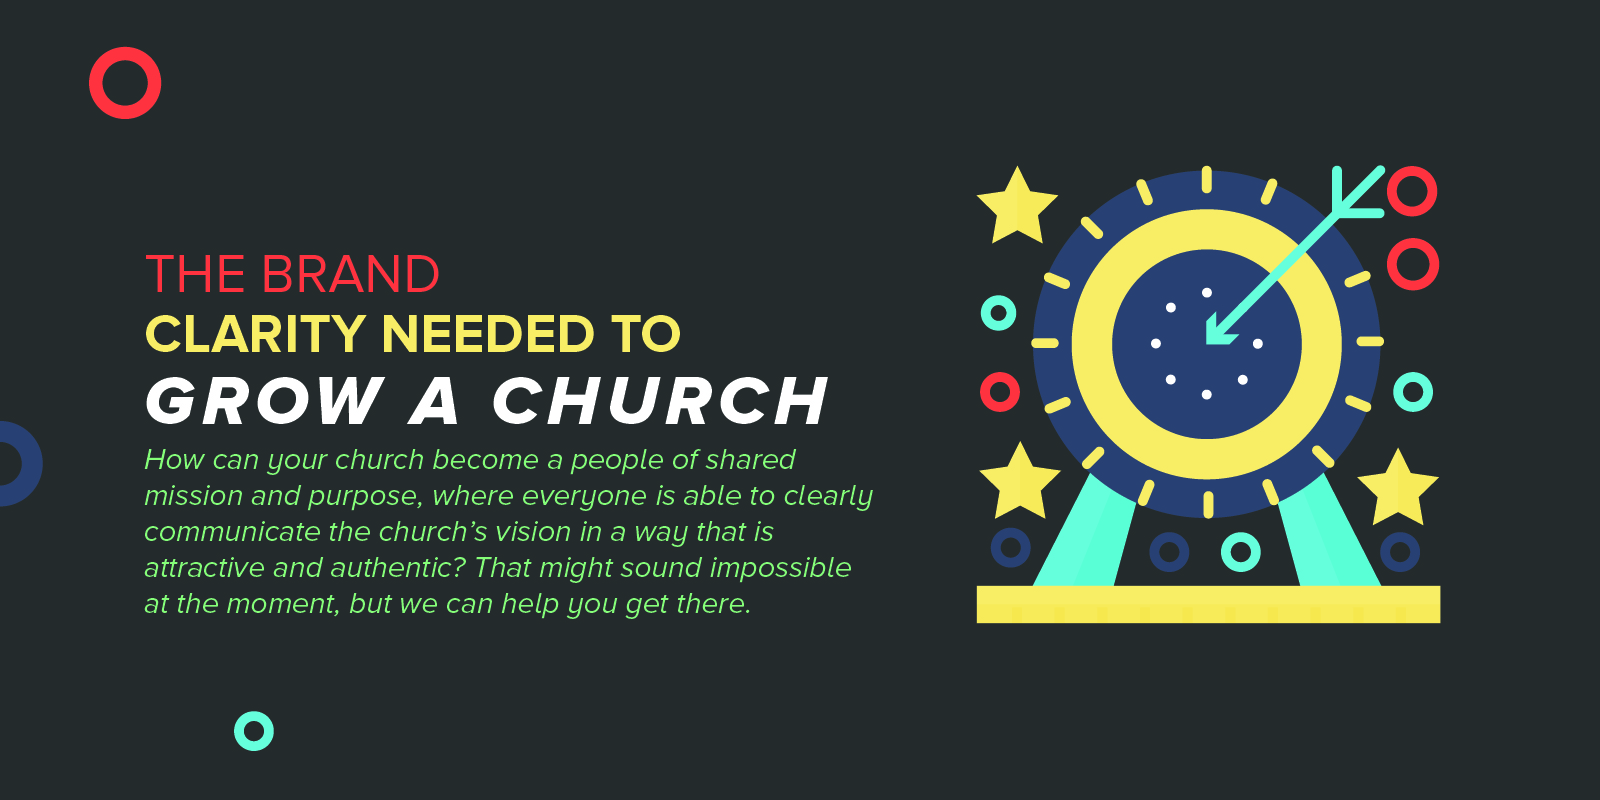 Church Branding Clarity Needed for Growth